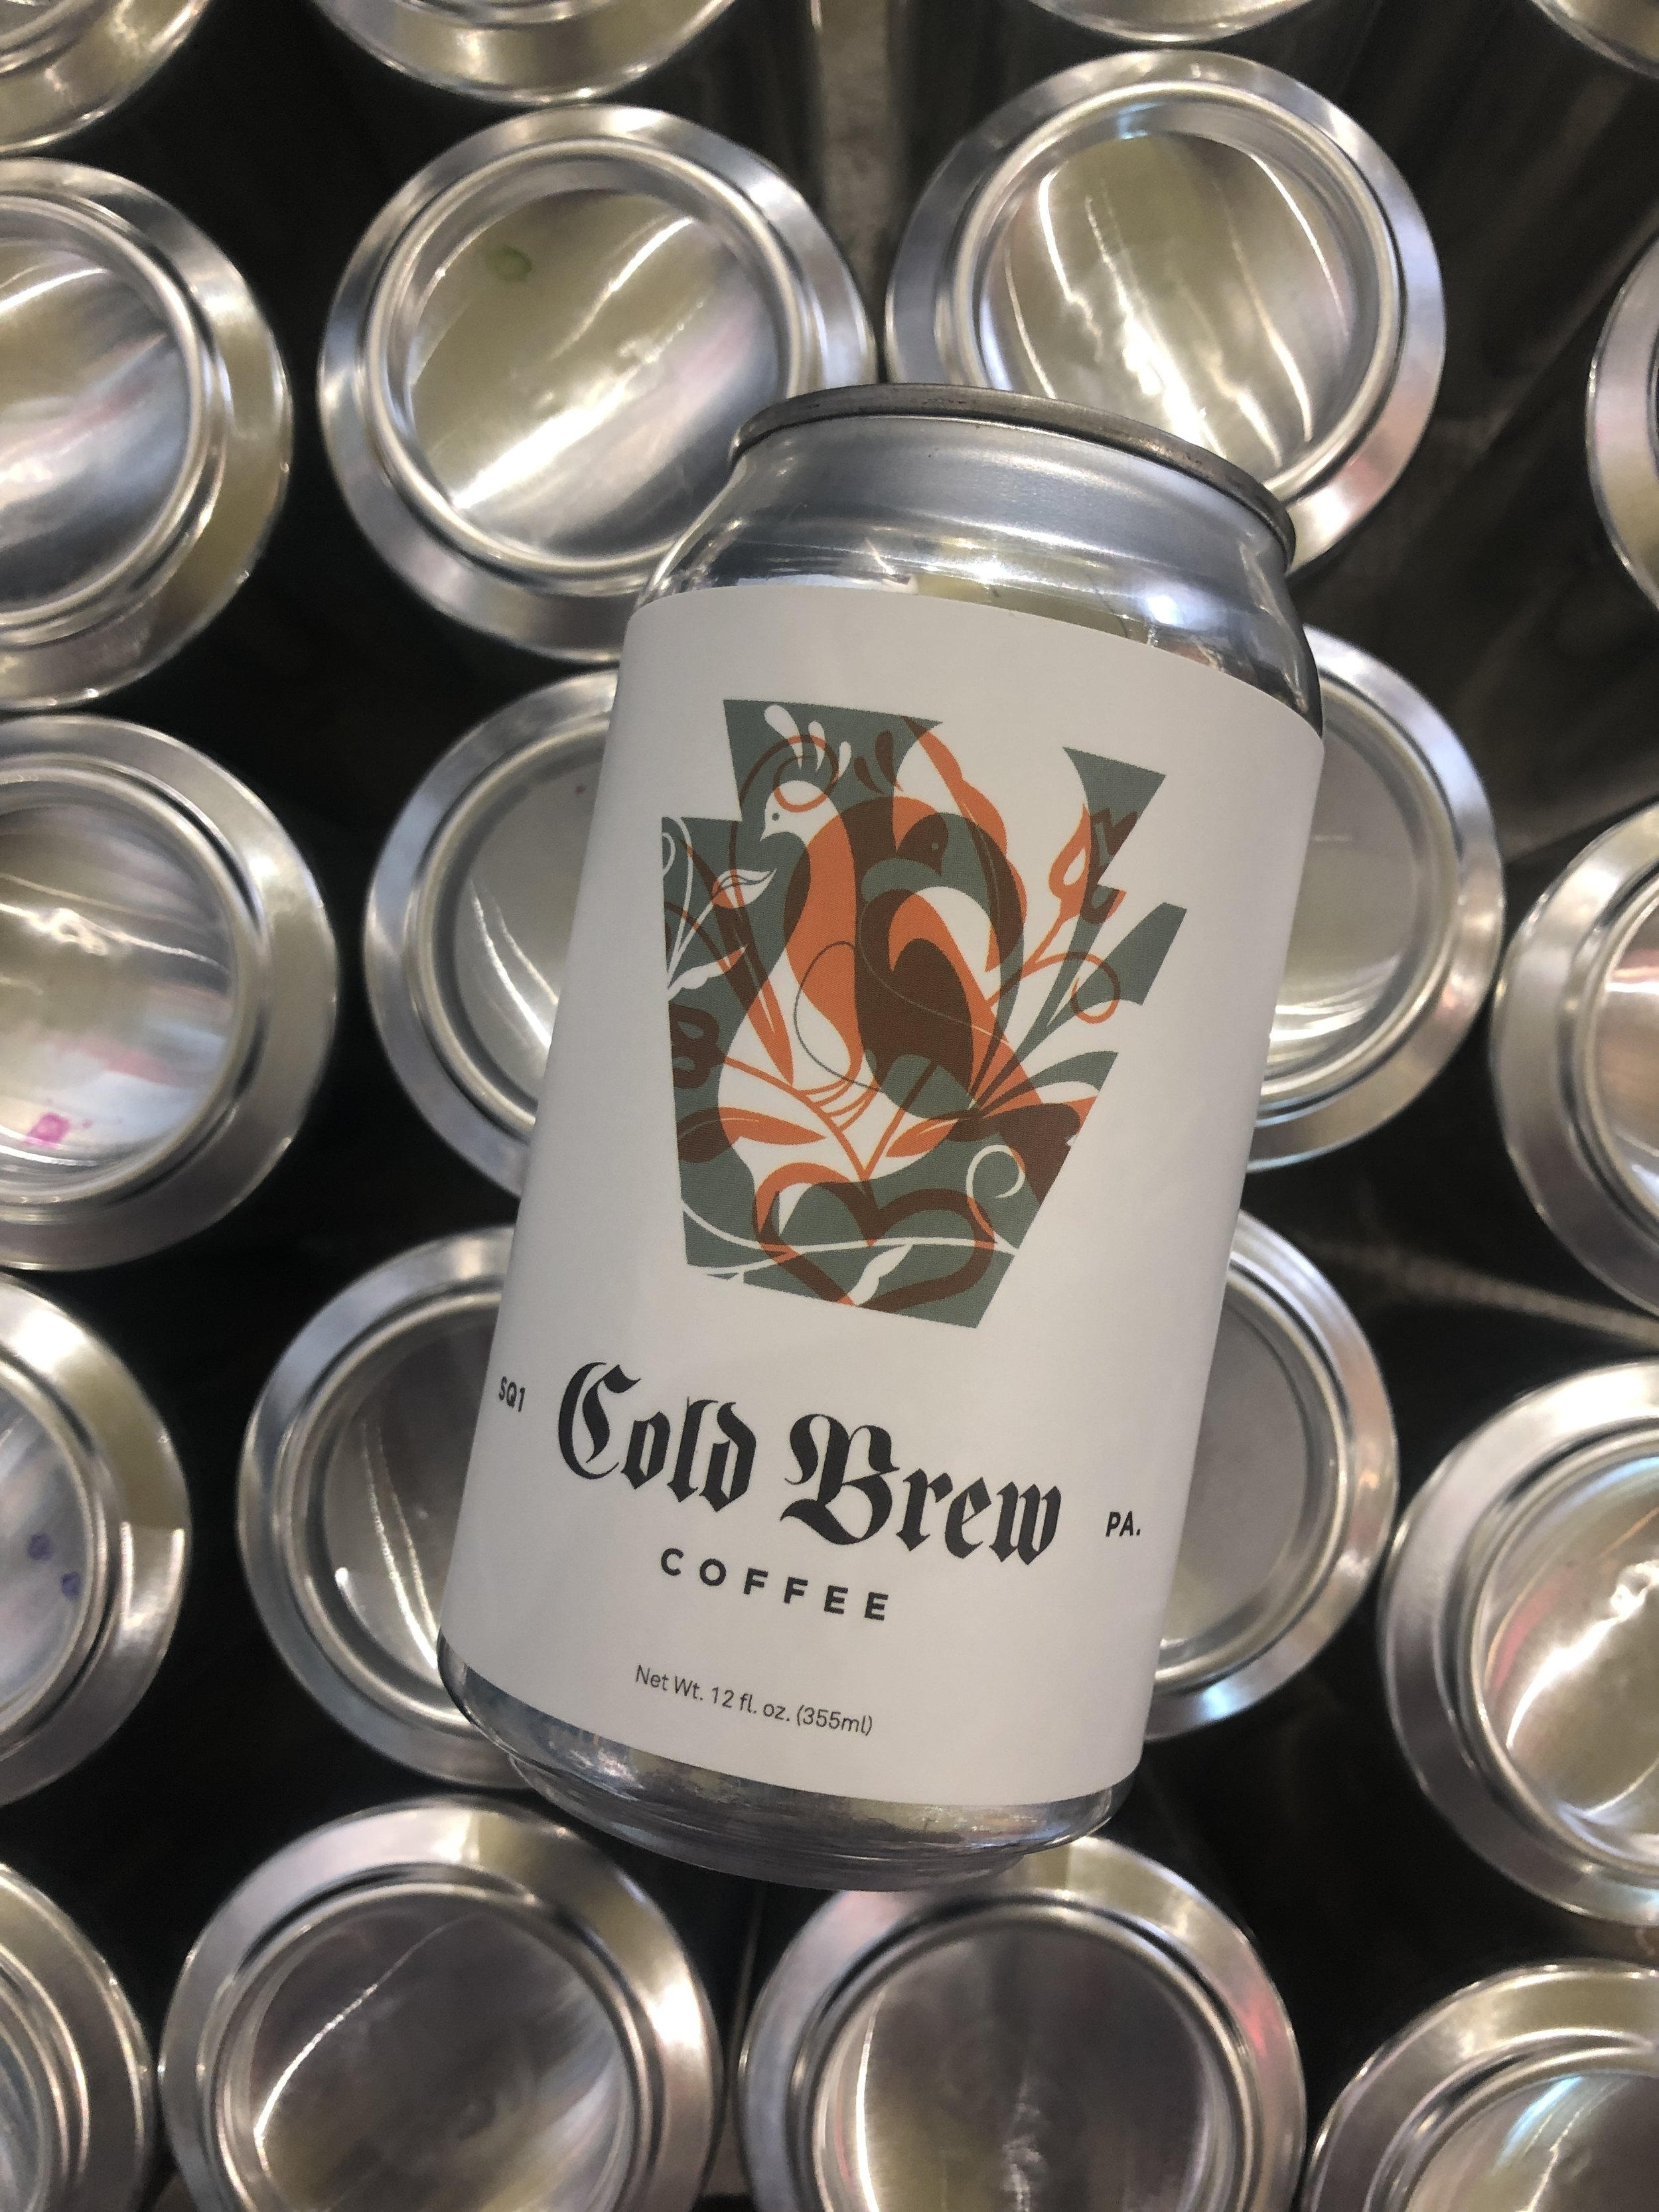 Square One Coffee, a coffee roaster in Lancaster, Pa,, wanted to can their cold brew instead of putting it in expensive, heavy, and breakable glass bottles. We helped them do that.